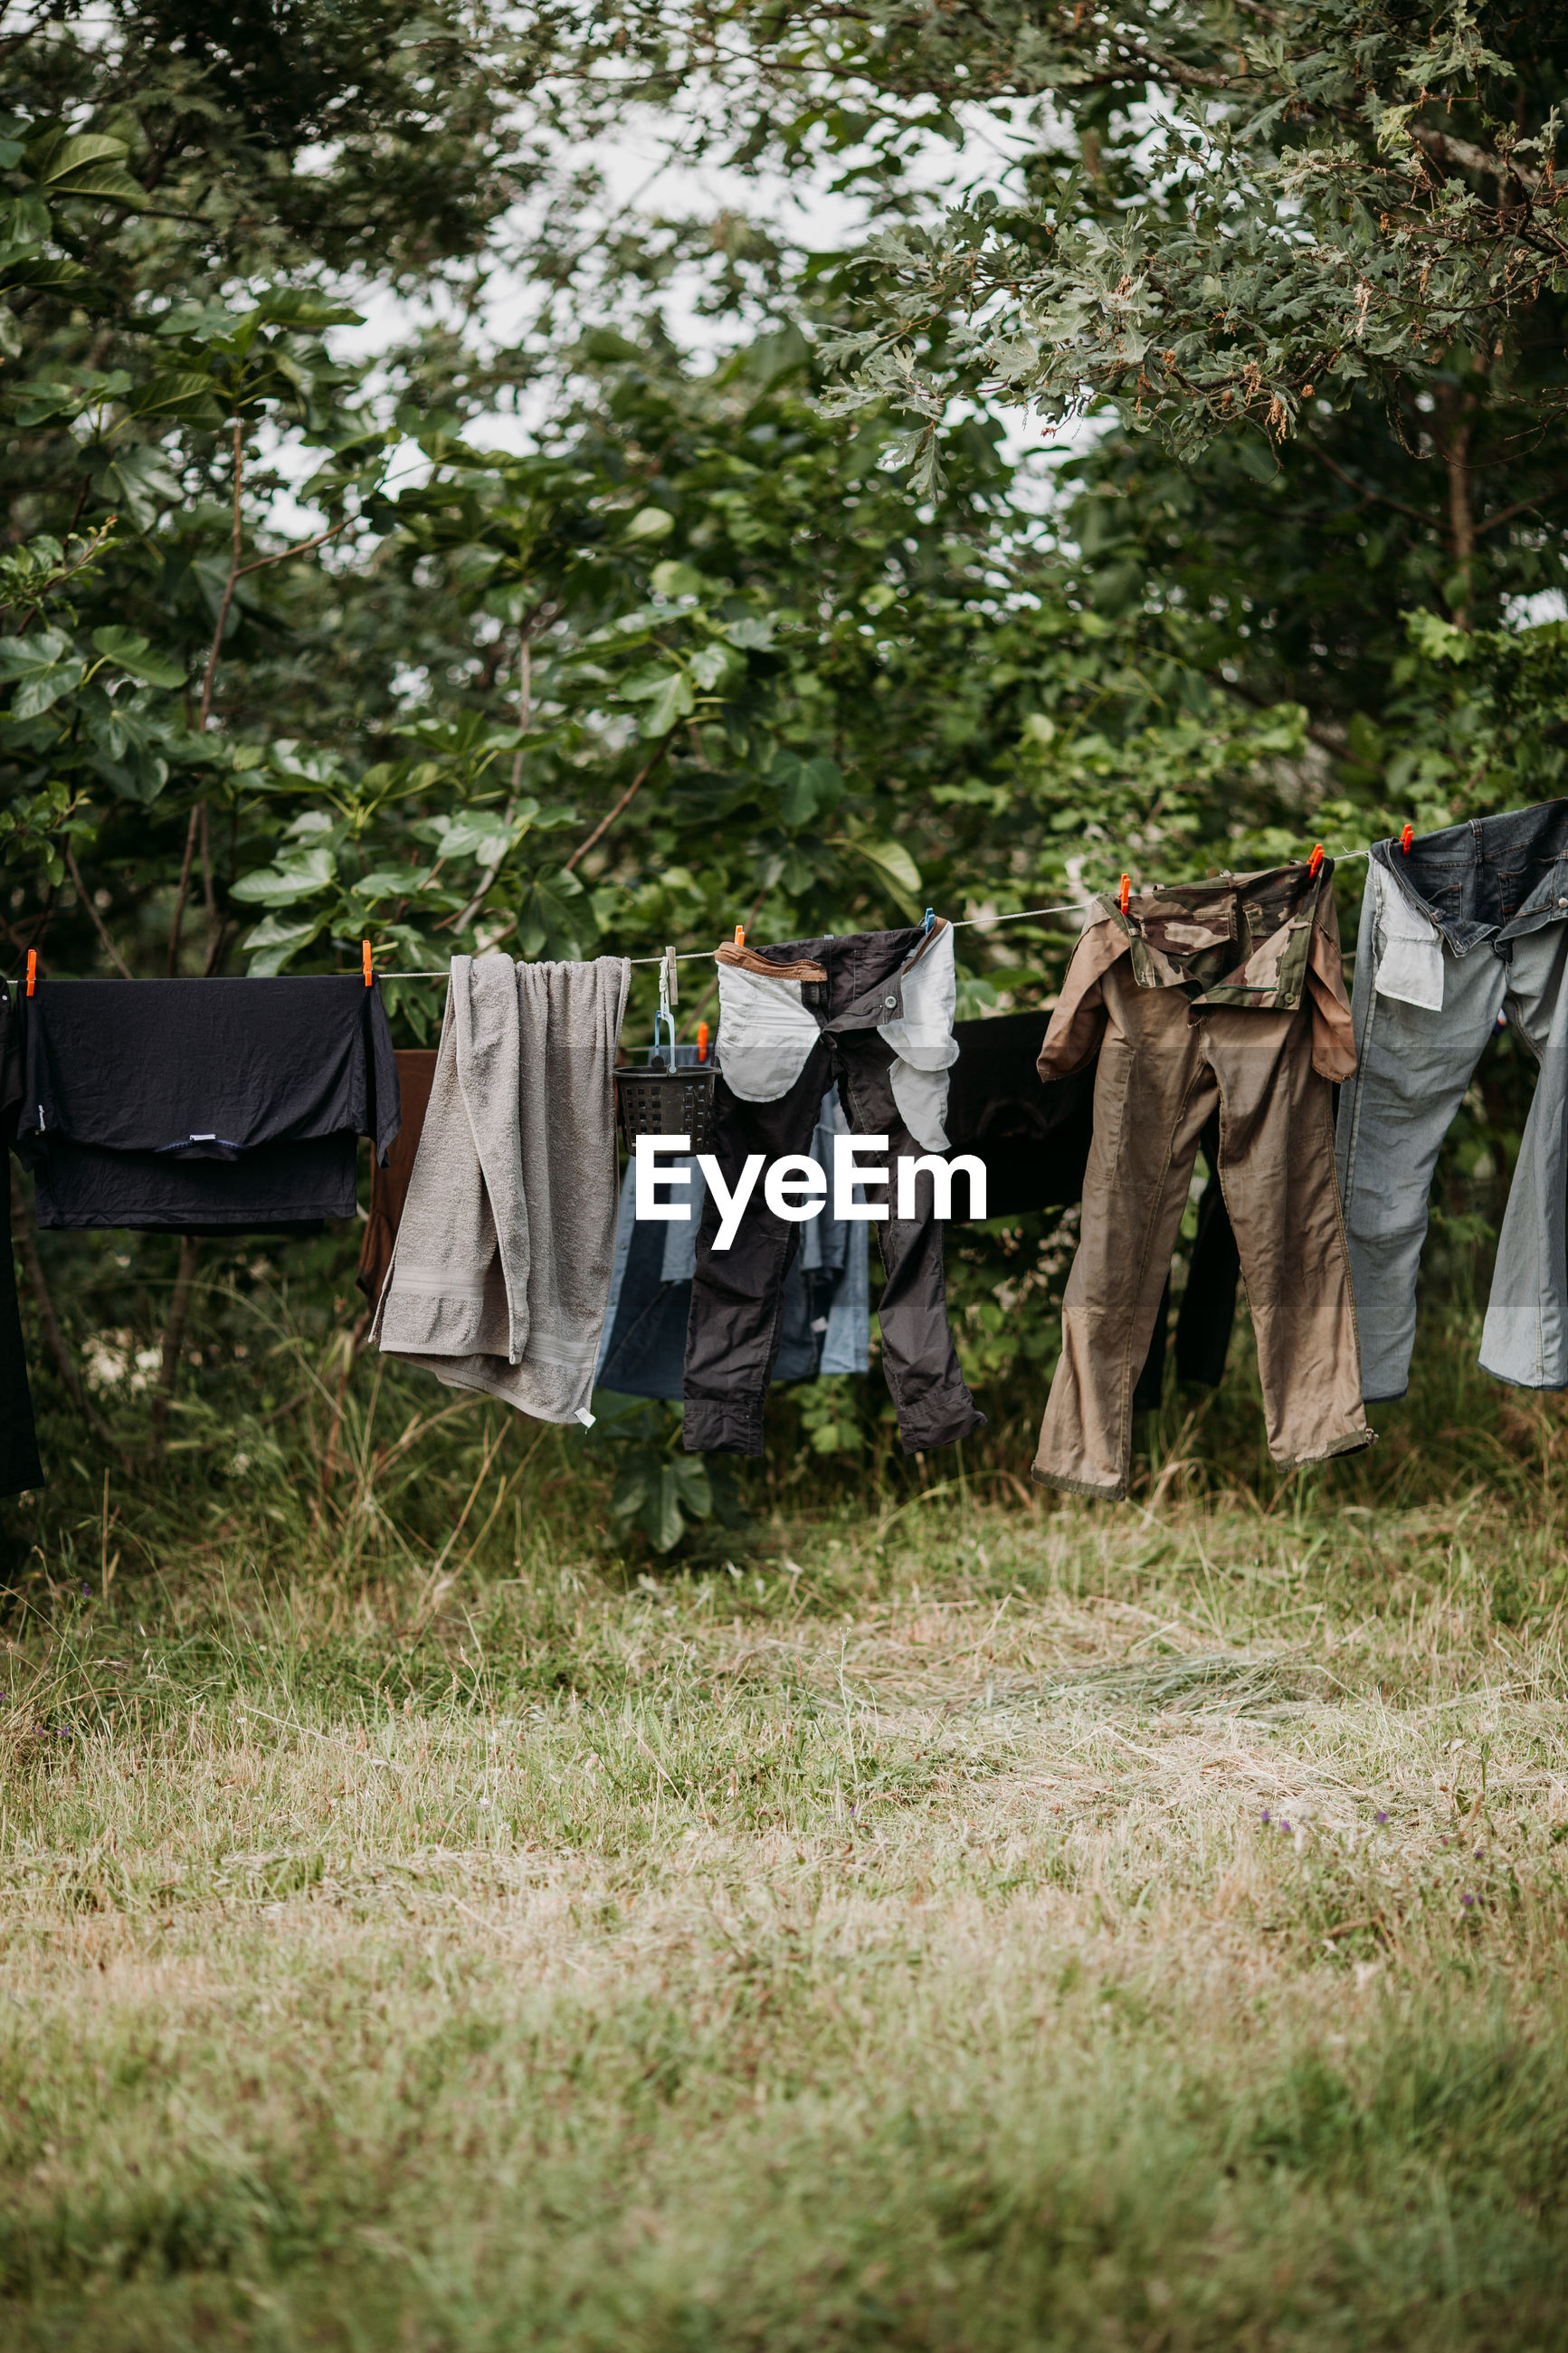 Clothes drying over field against trees